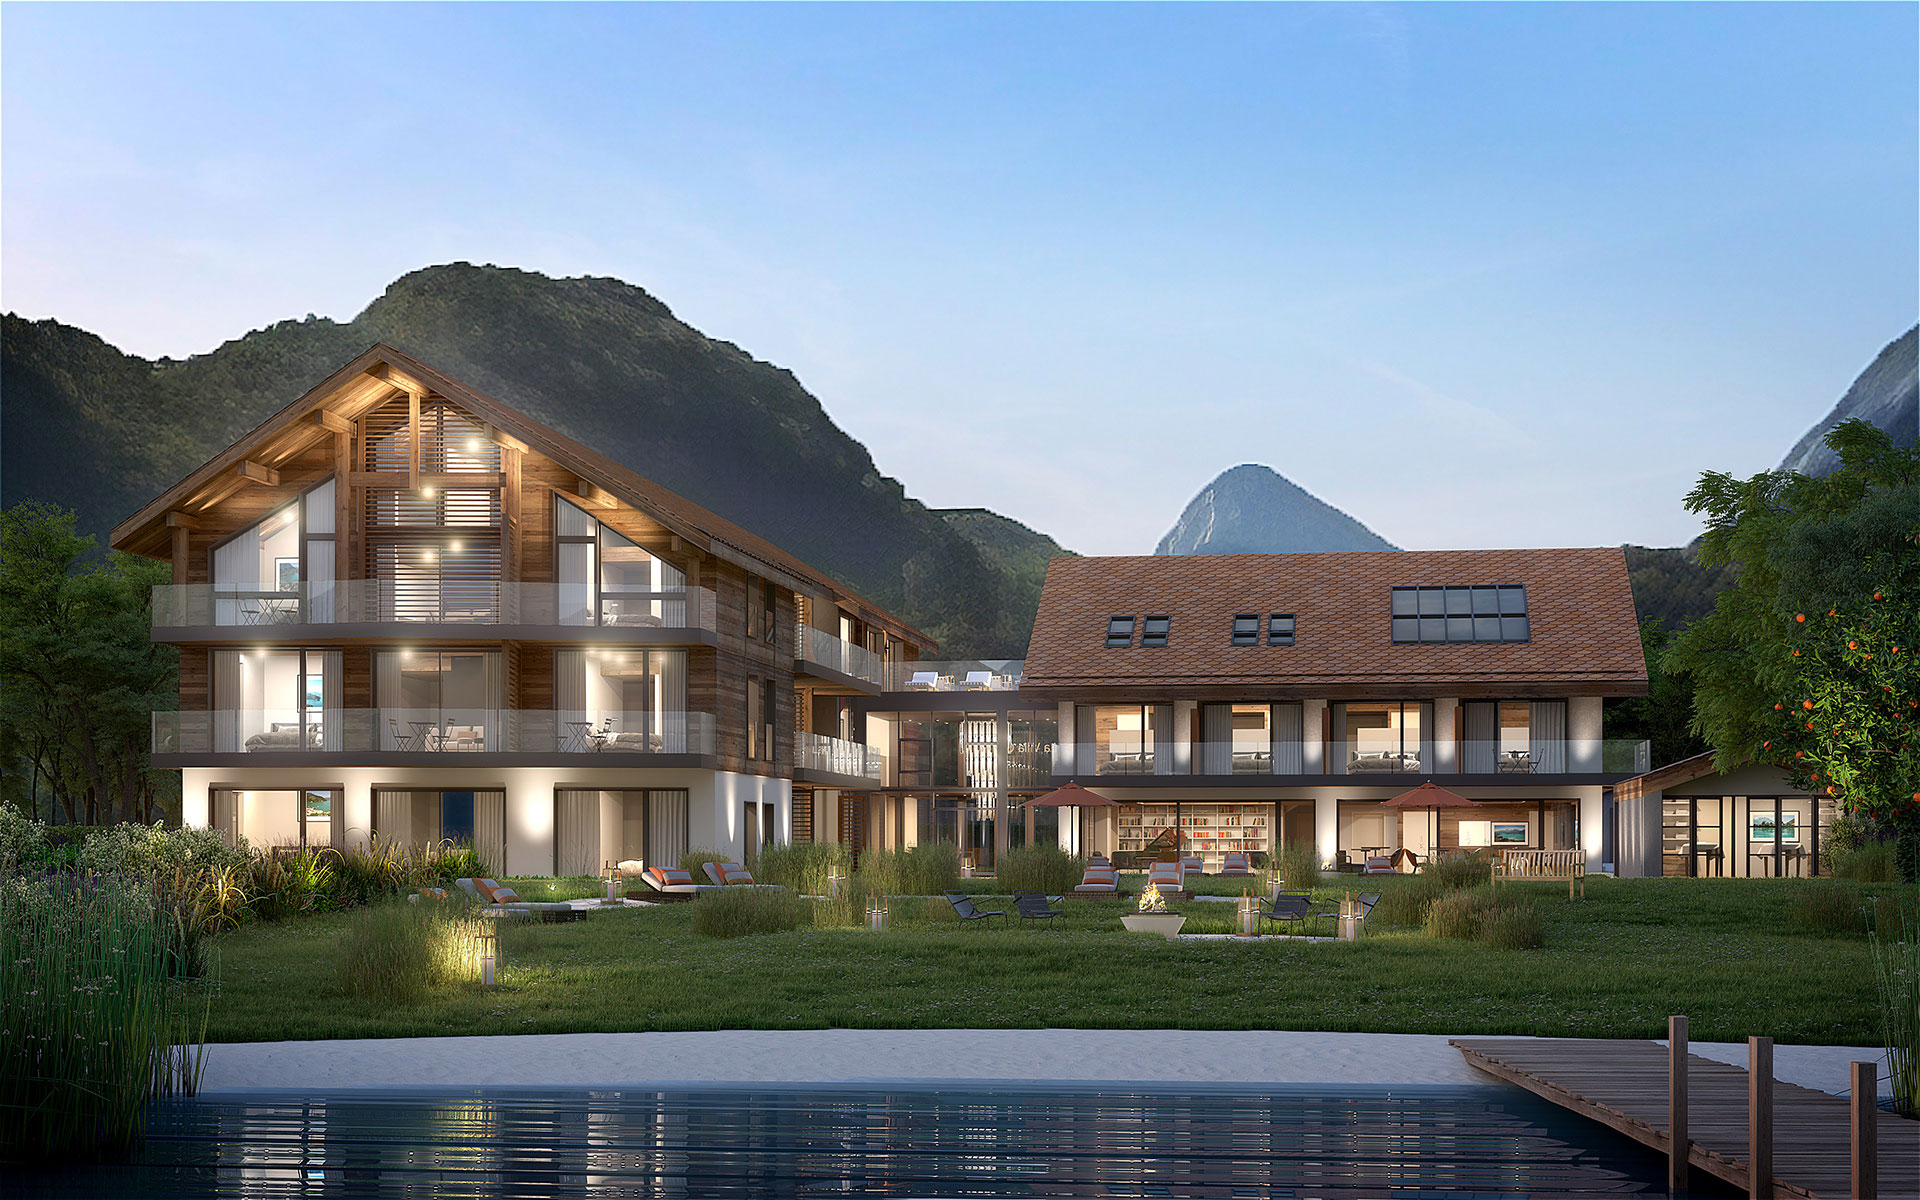 Architectural visualization in 3D of a mansion and yard for property development